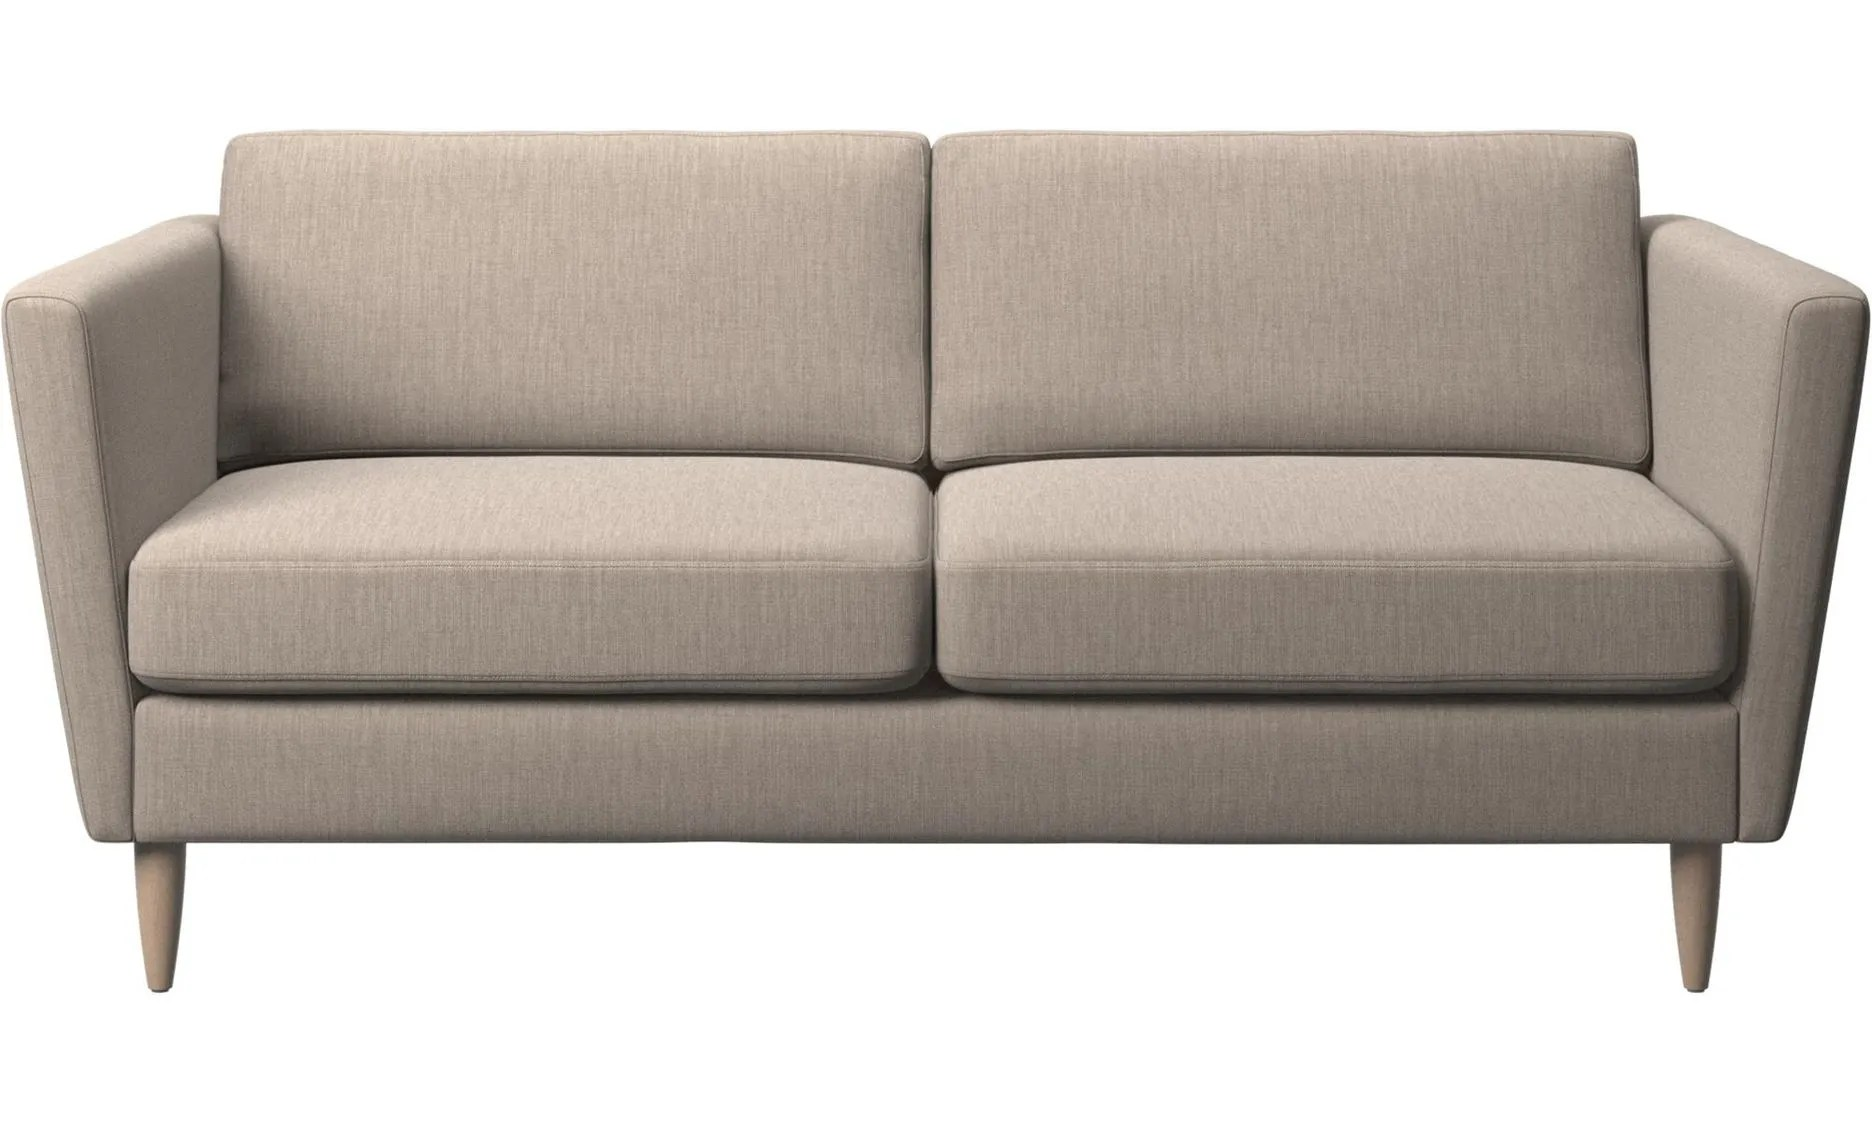 Sofa Online Purchase The Best Affordable Sofas That Don T Look Like Affordable Sofas